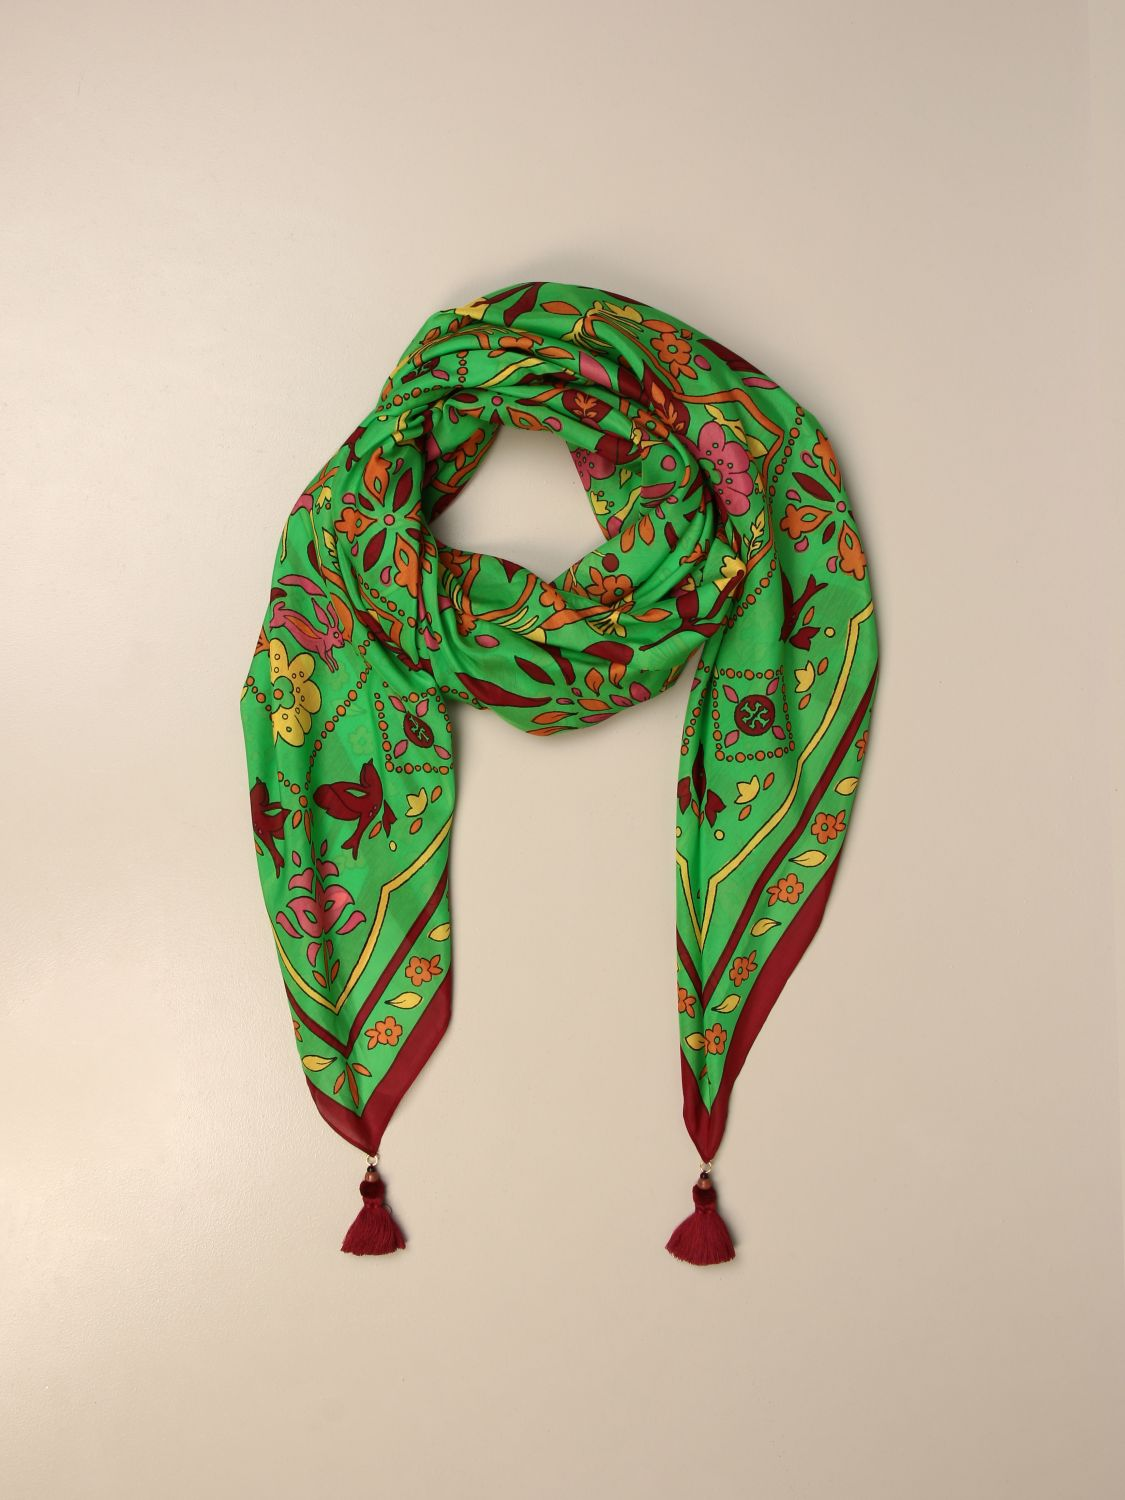 Neck scarf Tory Burch: Tory Burch patterned scarf with tassels green 2